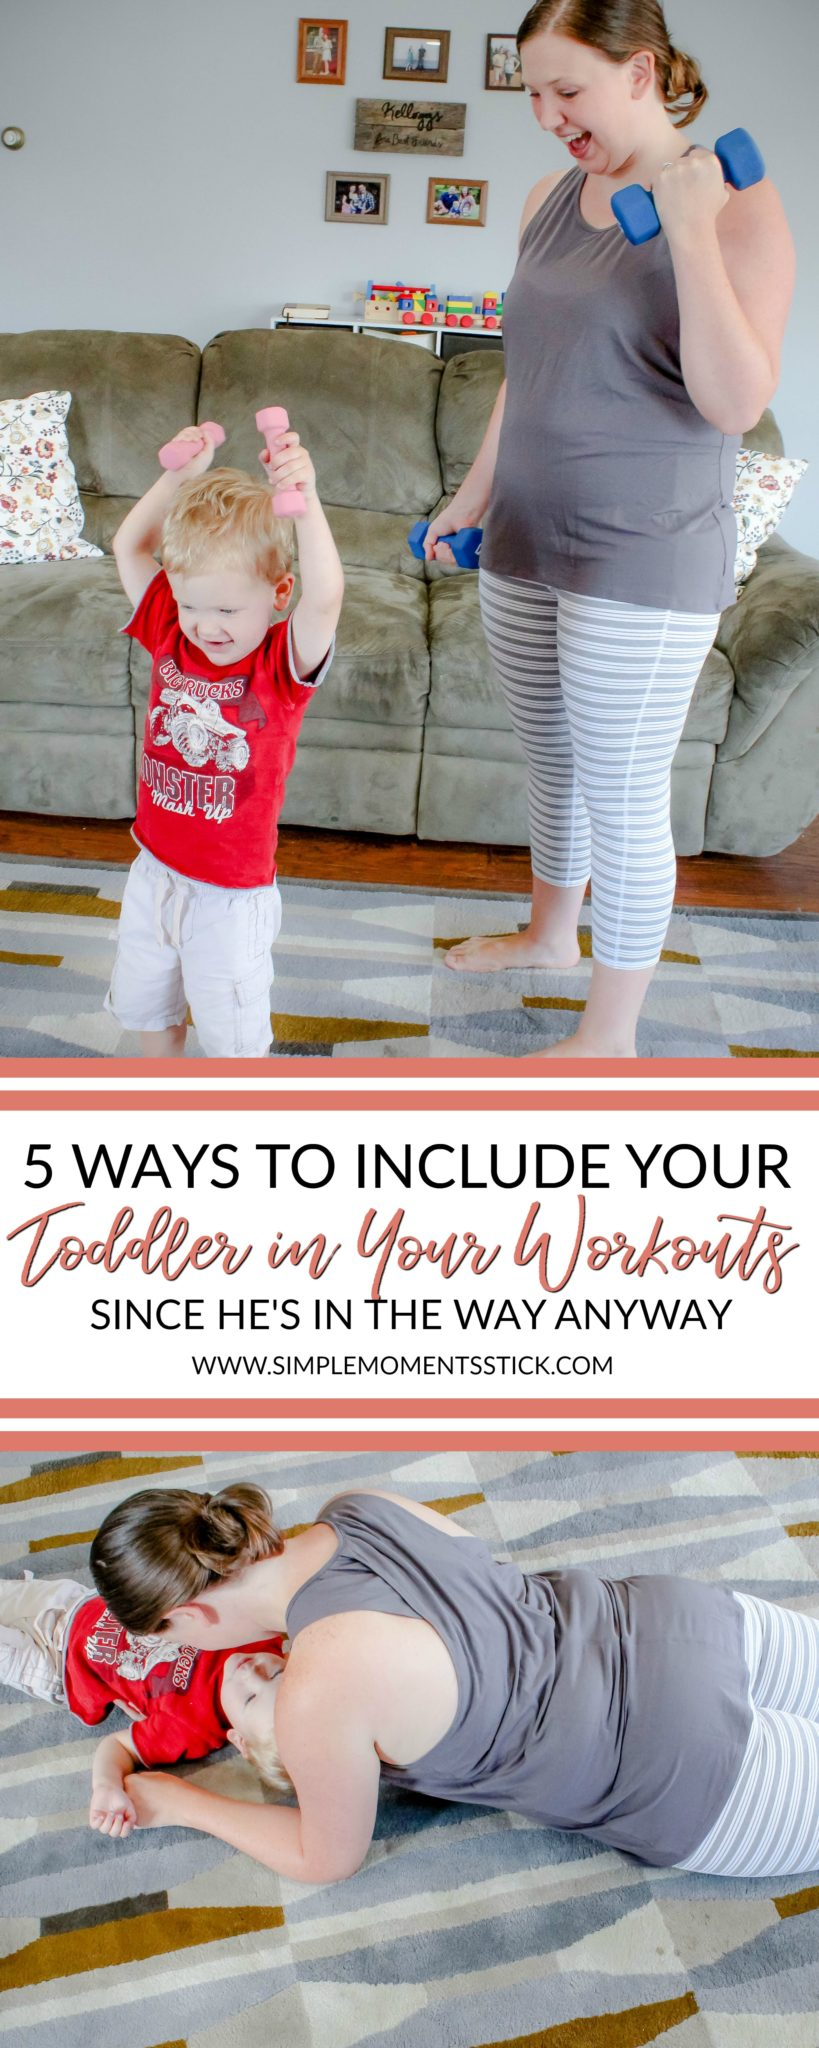 Wondering how to workout with a toddler at home?  I have a few good tips!